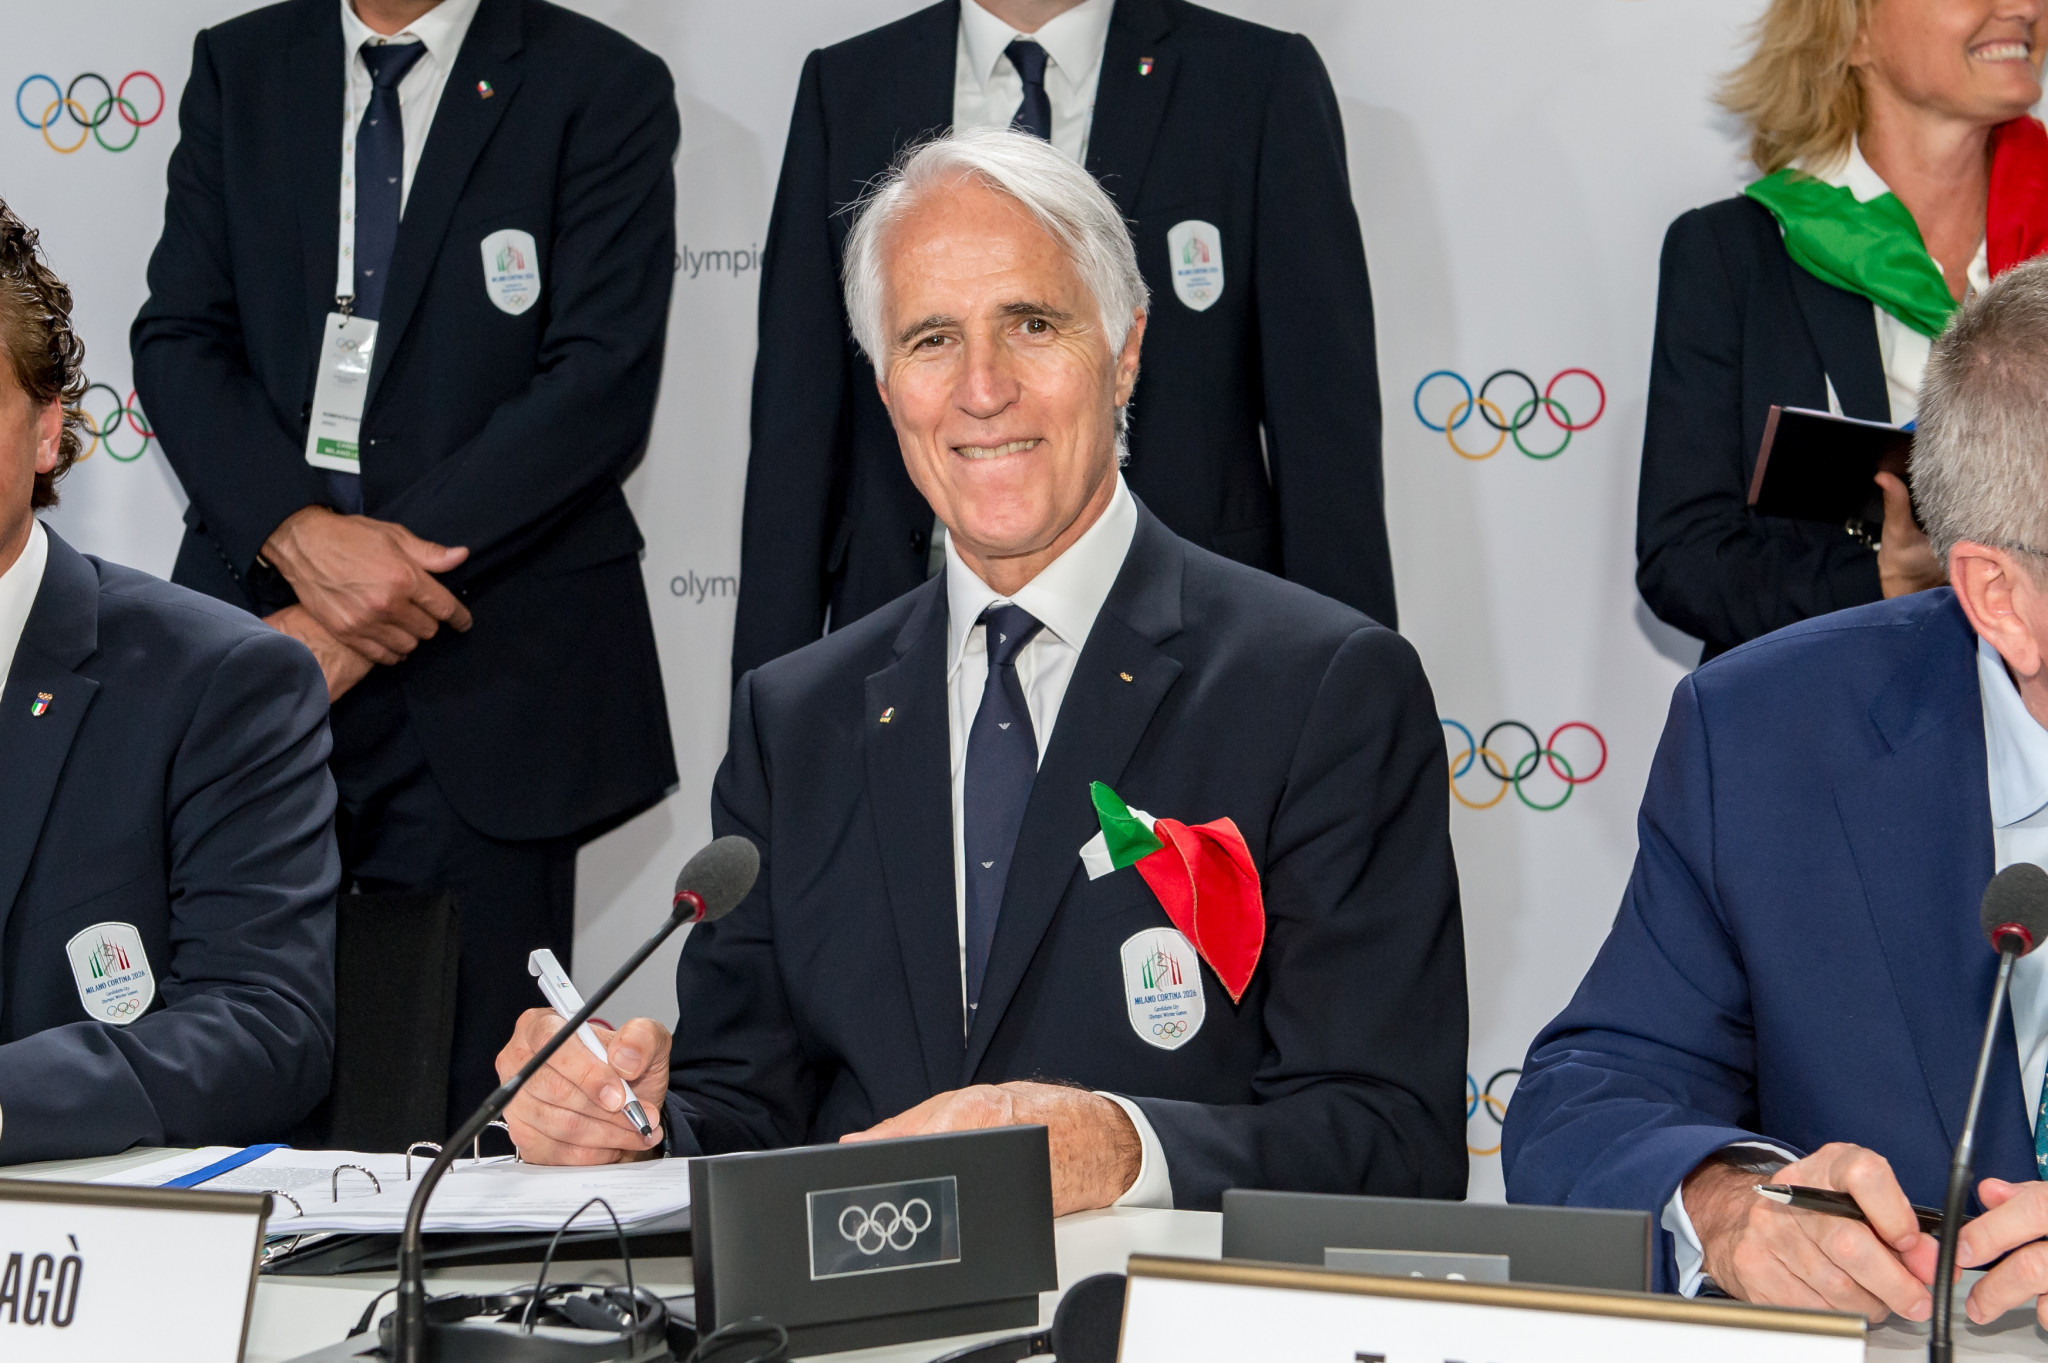 An IOC member, CONI President Giovanni Malagò warned that Italy could face sanctions due to the draft sports law ©Getty Images